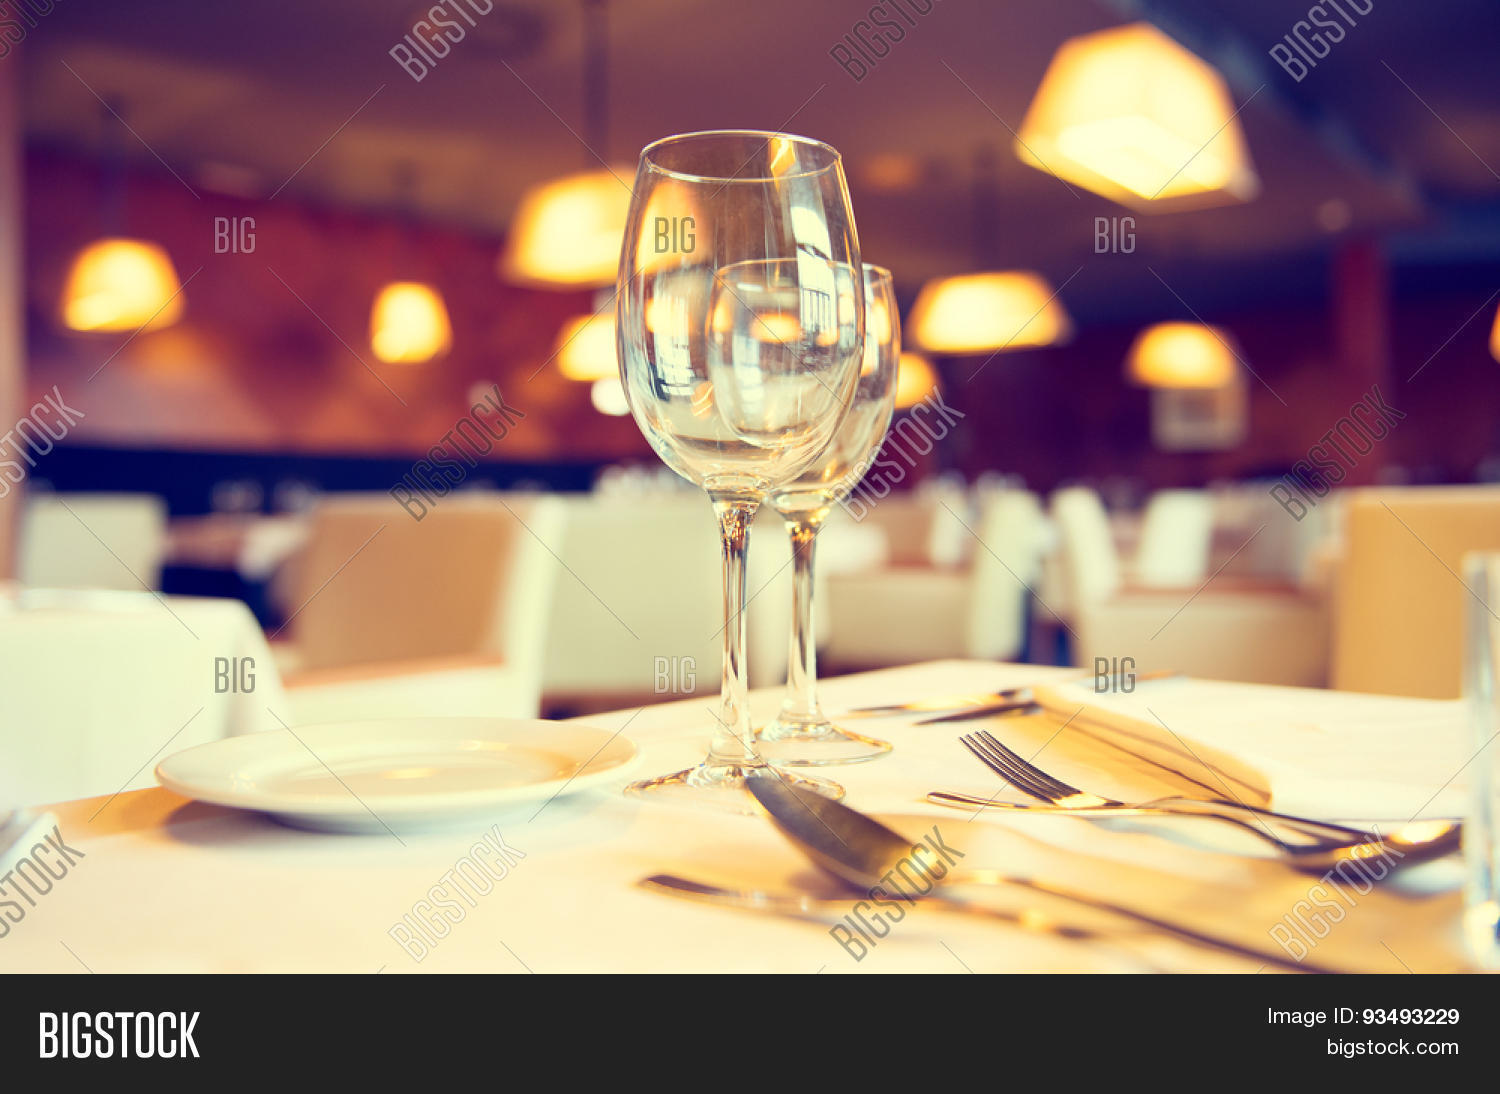 dinner table background. Served Dinner Table In A Restaurant. Restaurant Interior. Cozy Setting. Defocused Background R